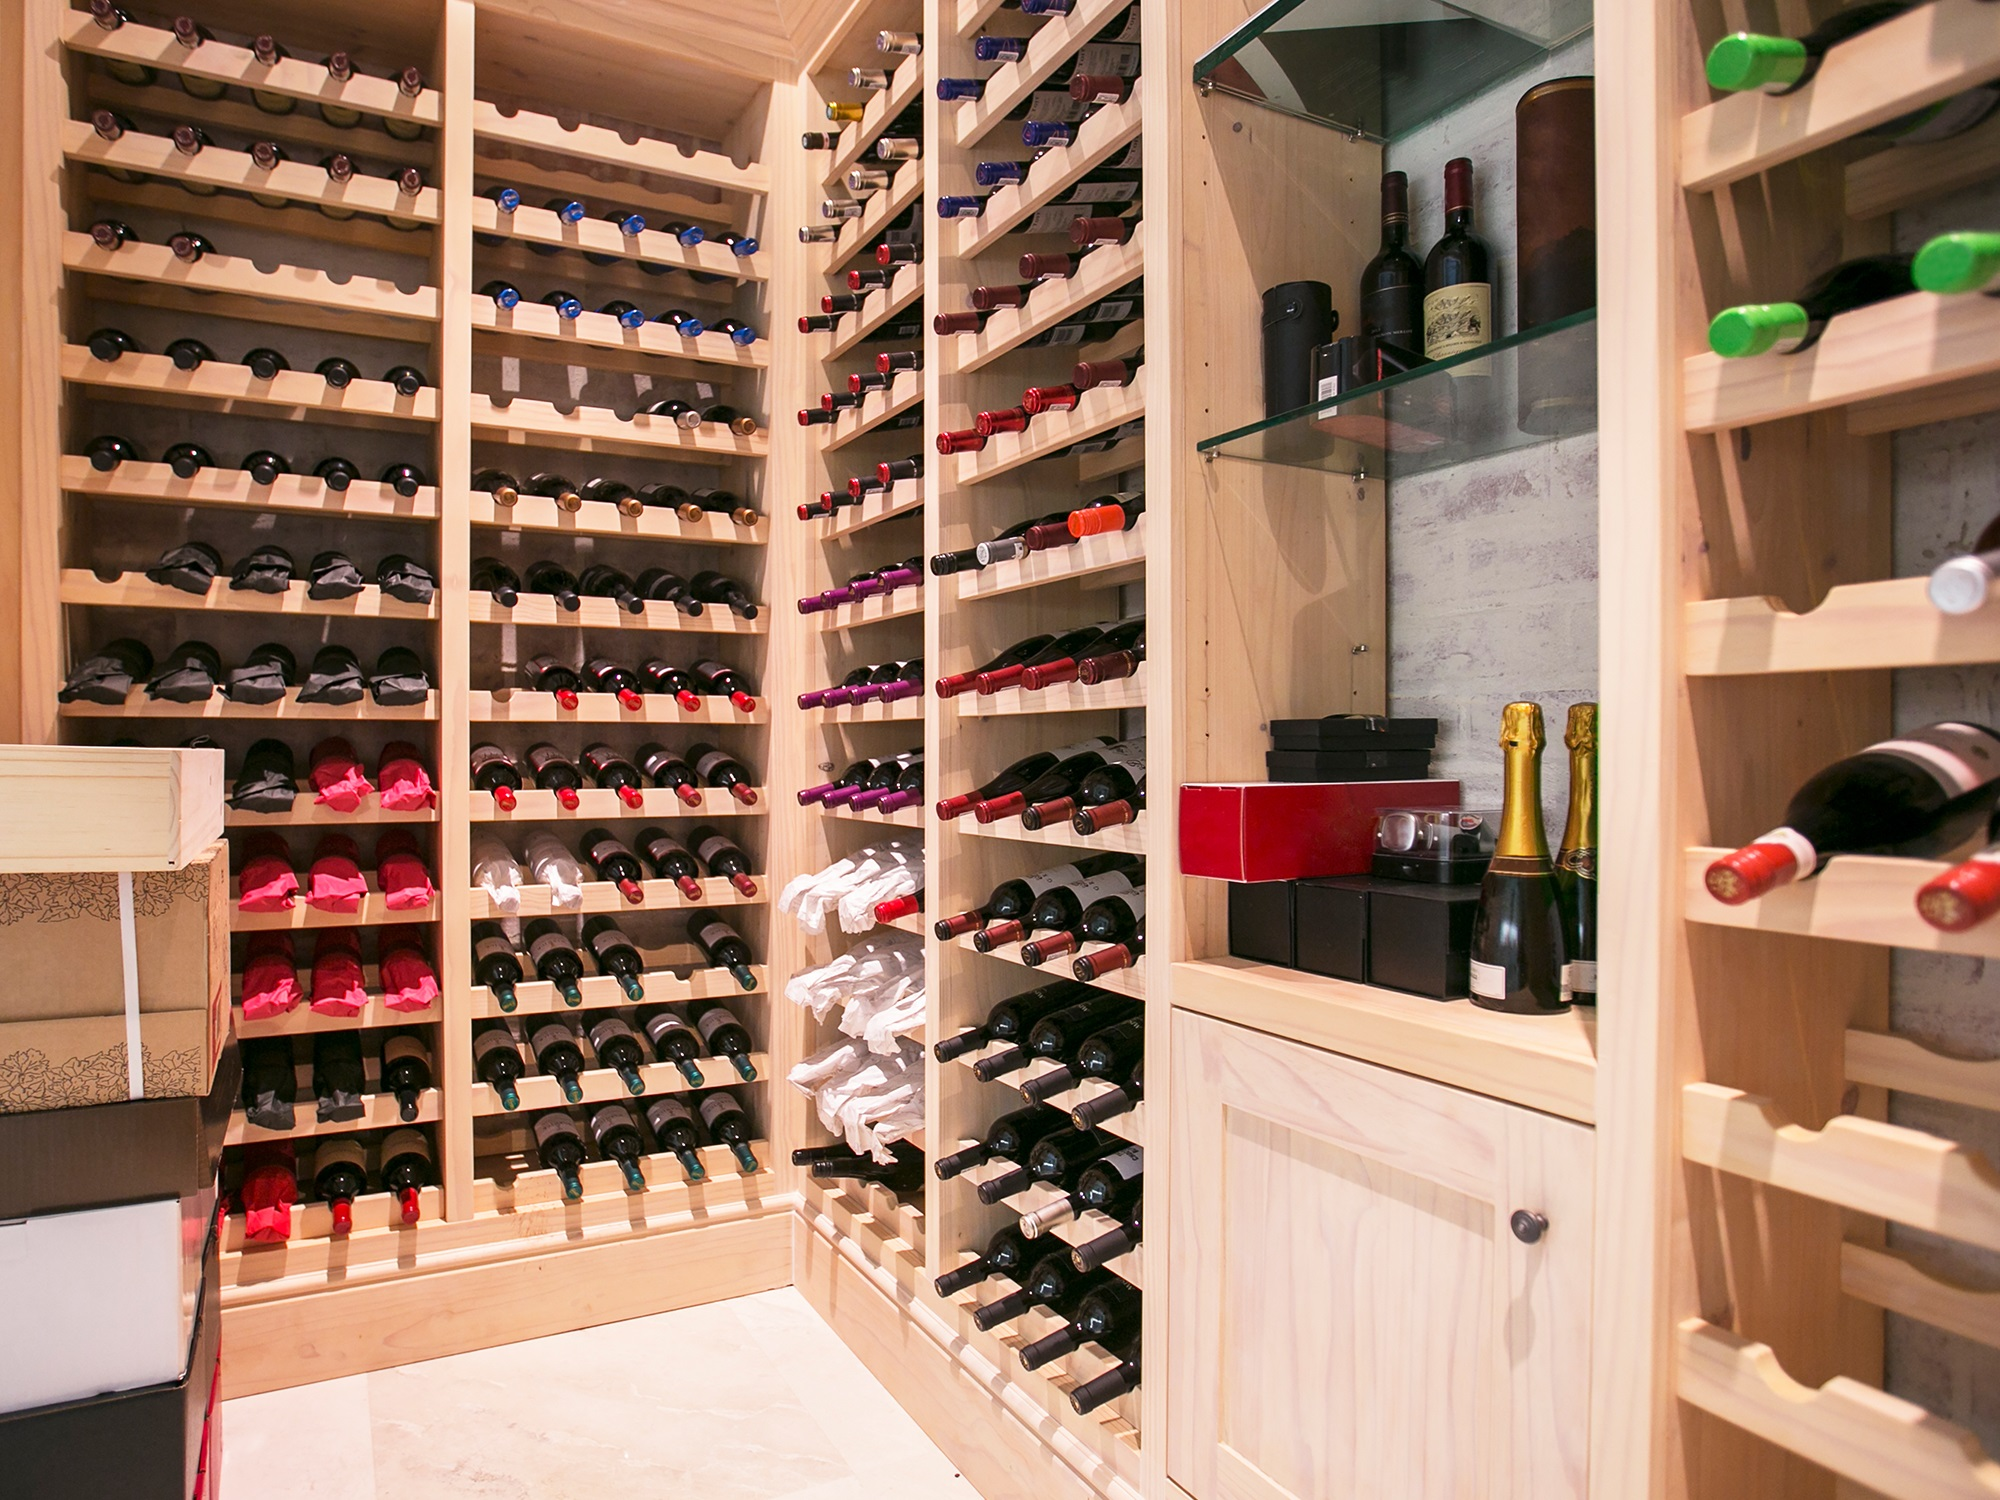 Does a wine cellar increase home value?